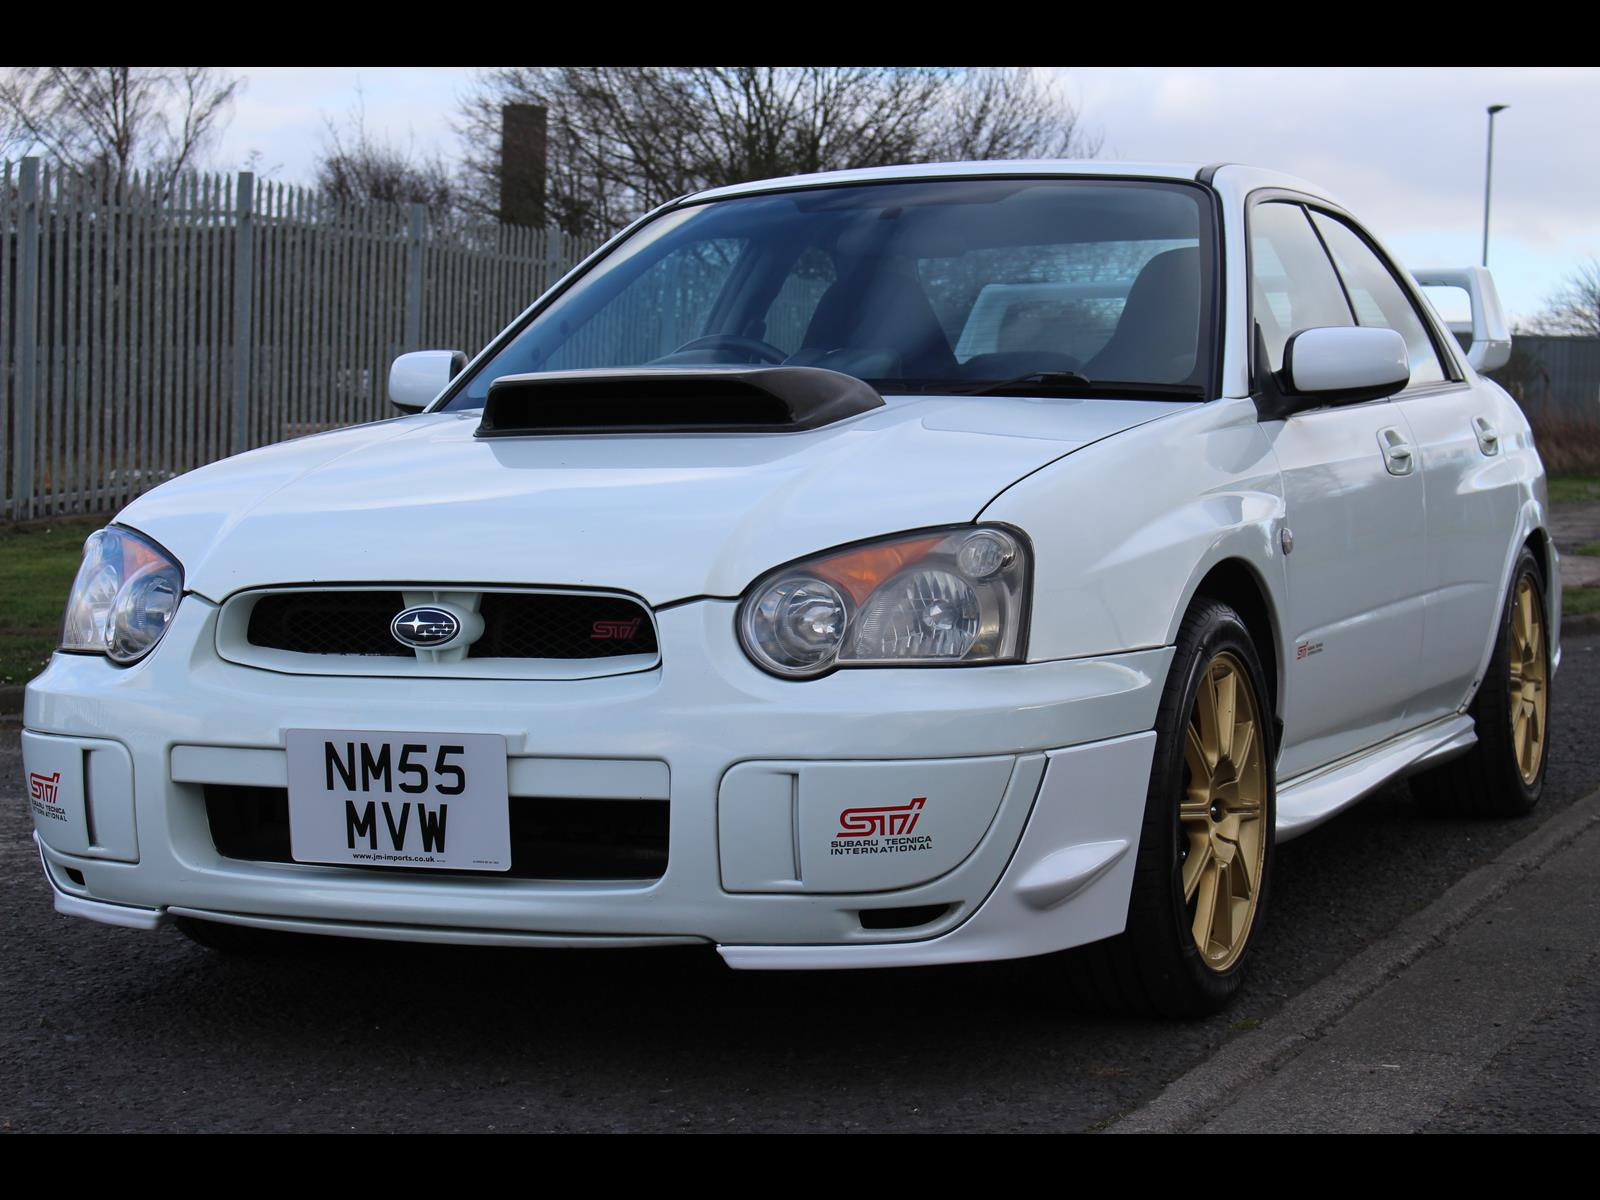 Electric Brake Controller >> 2006 Subaru Impreza WRX STI 6 Speed Manual - JM-Imports